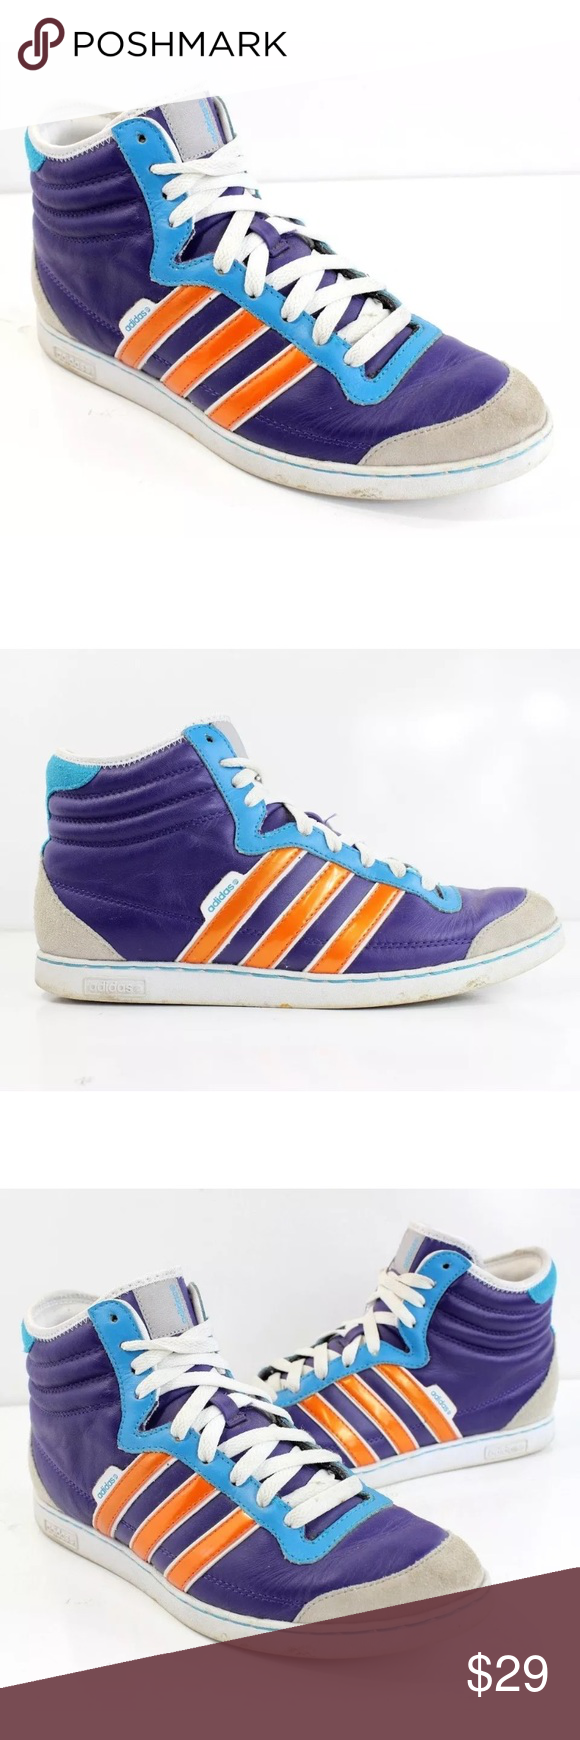 brand new 14dc6 82d38 Mens Adidas Neo Hi Purple Orange Blue Leather Shoe Men s Adidas NEO  High-Top Shoe Great condition - free of any notable defects Soles show very  minor wear ...